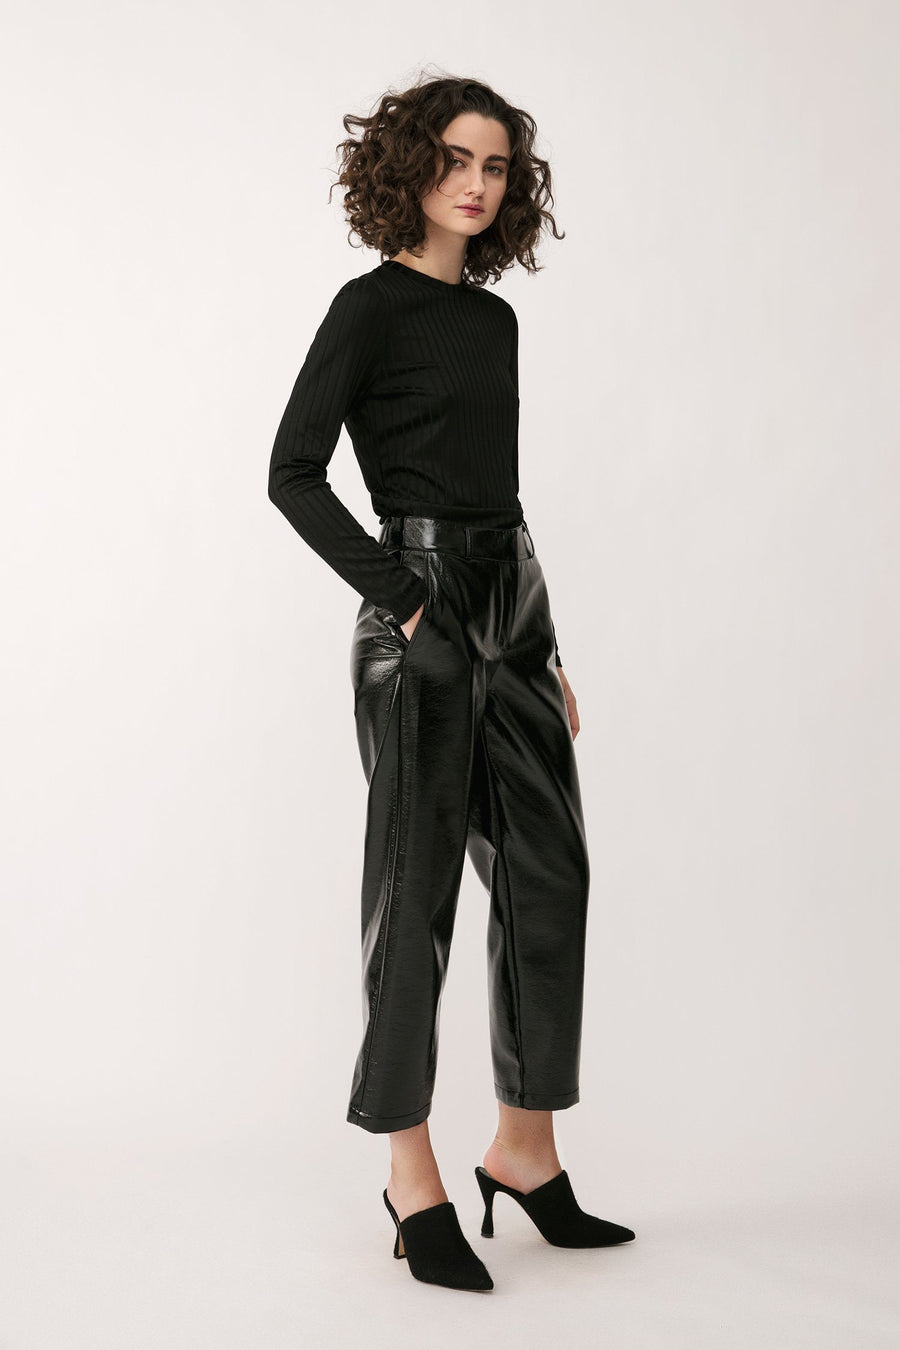 VERDE TROUSERS - BLACK Trousers Stylein